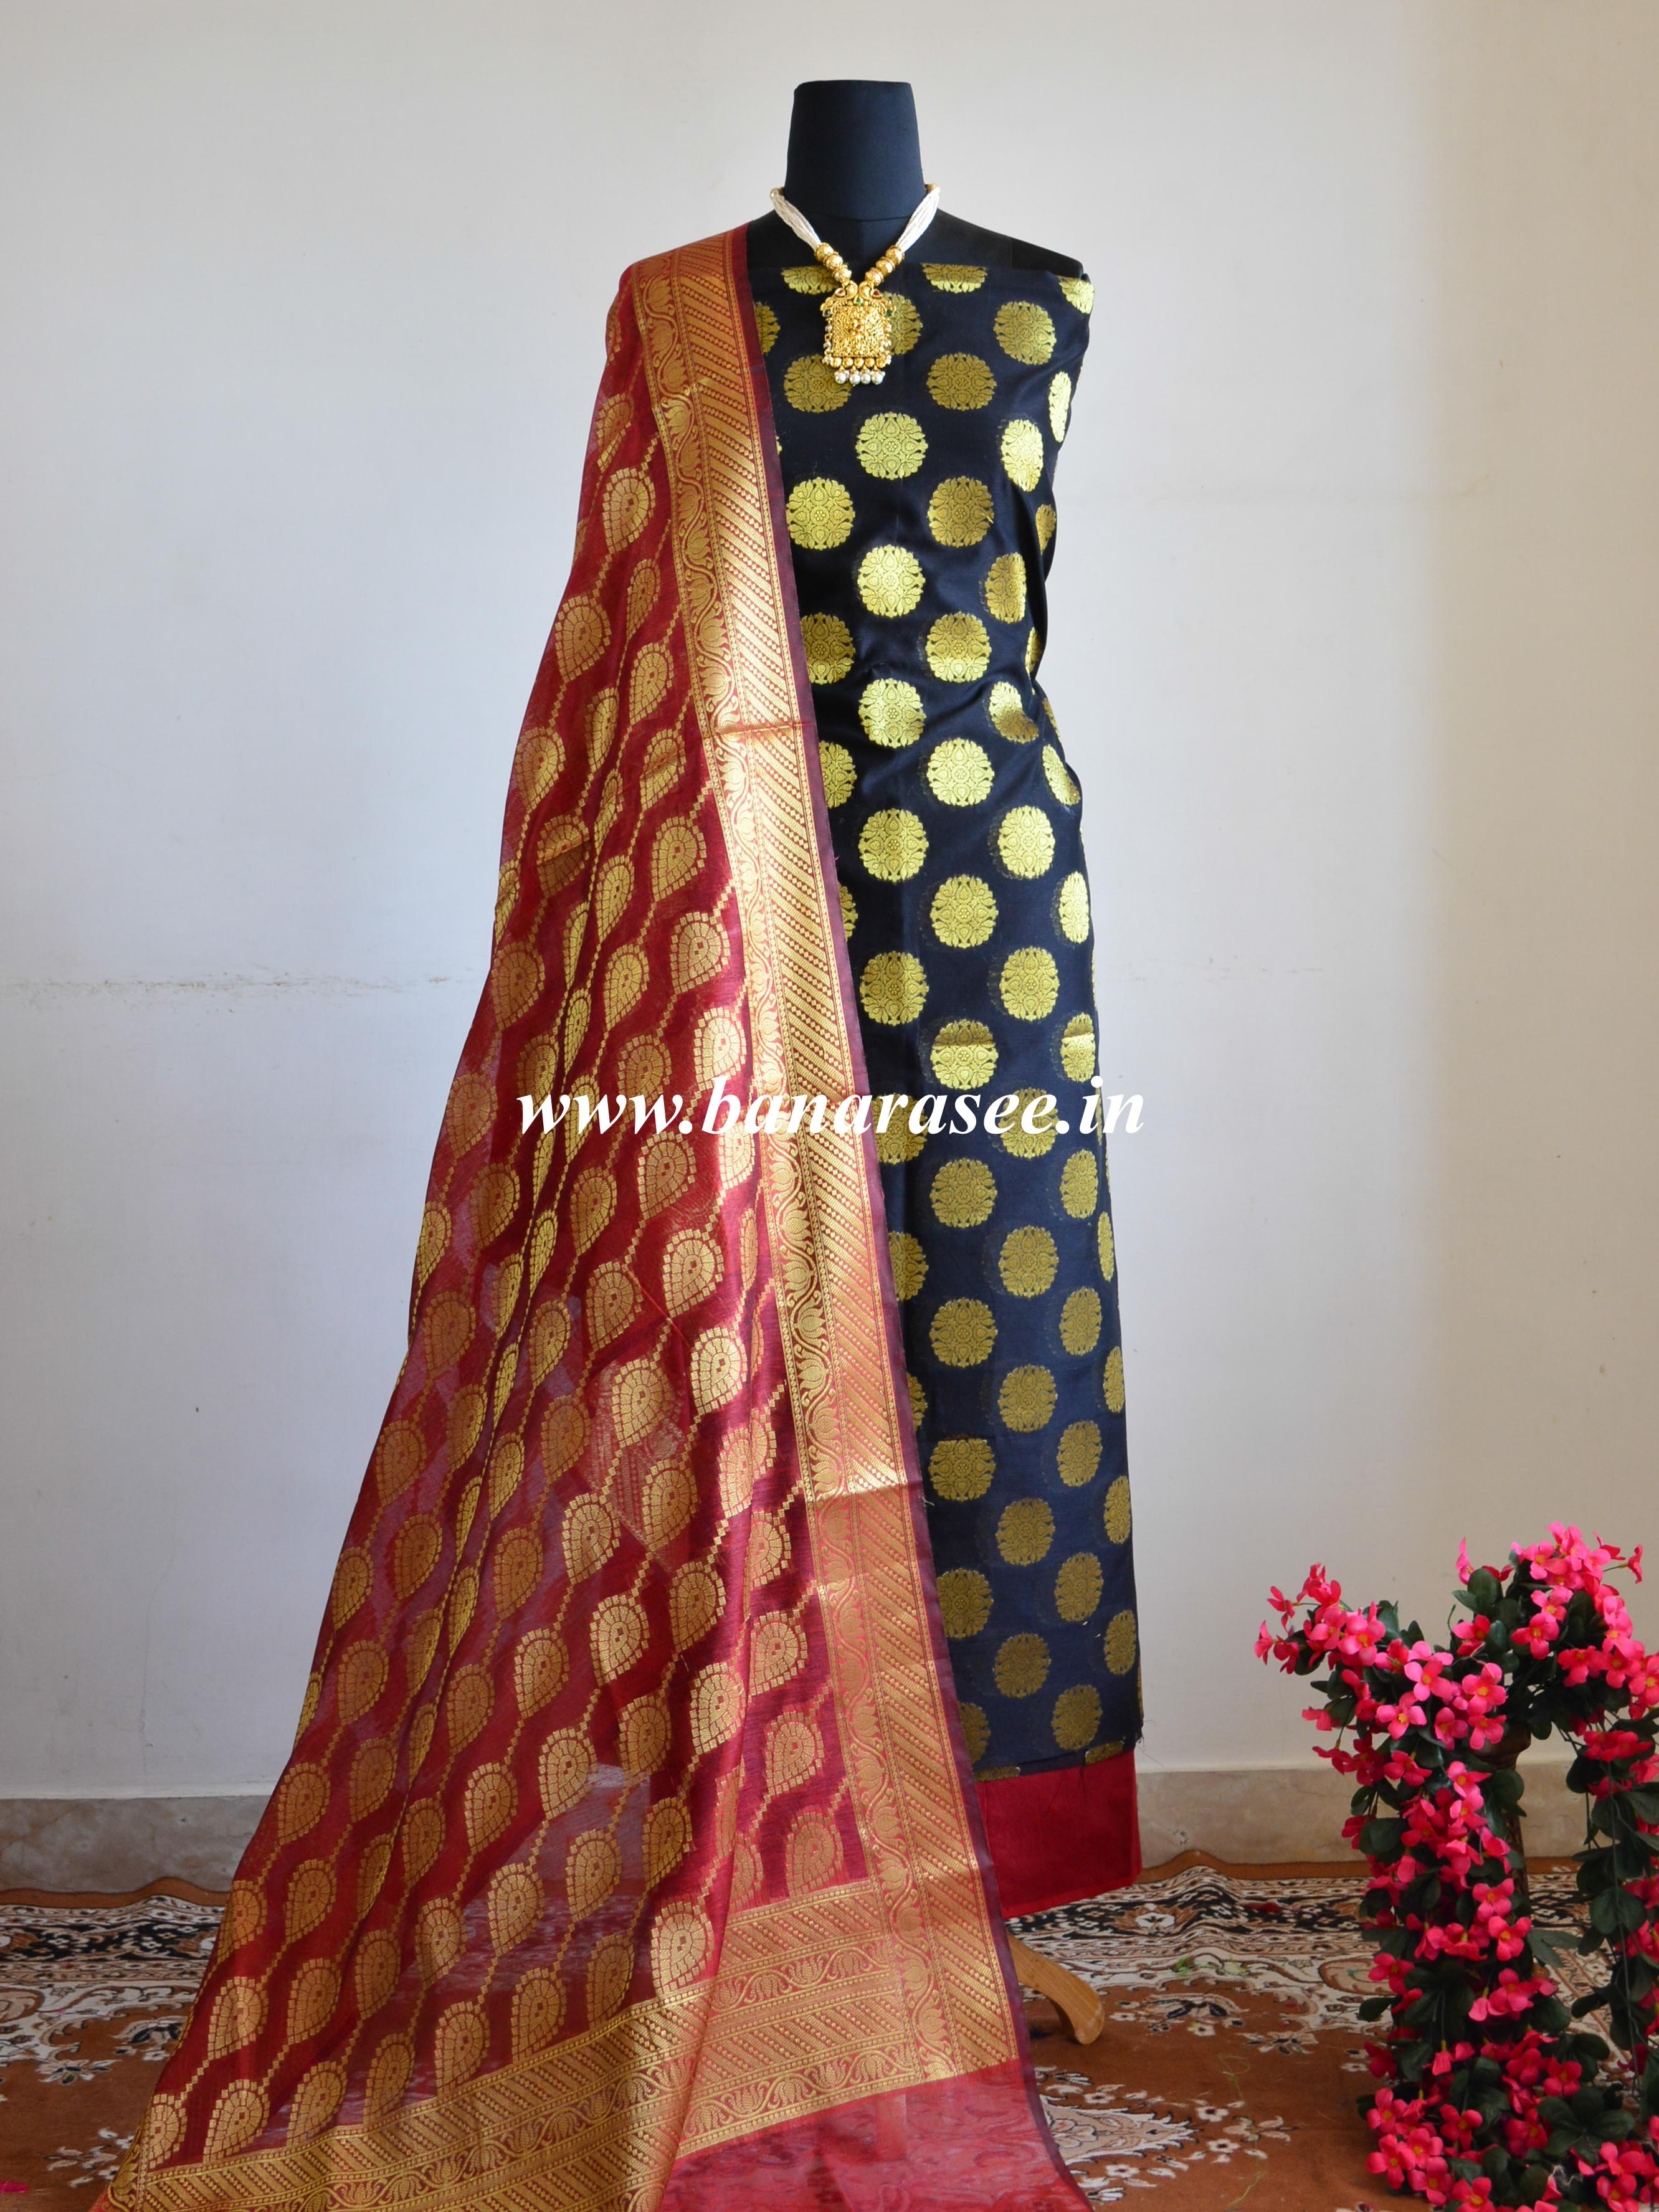 Banarasee Chanderi Cotton Salwar Kameez Buta Design Fabric With Contrast Dupatta-Black